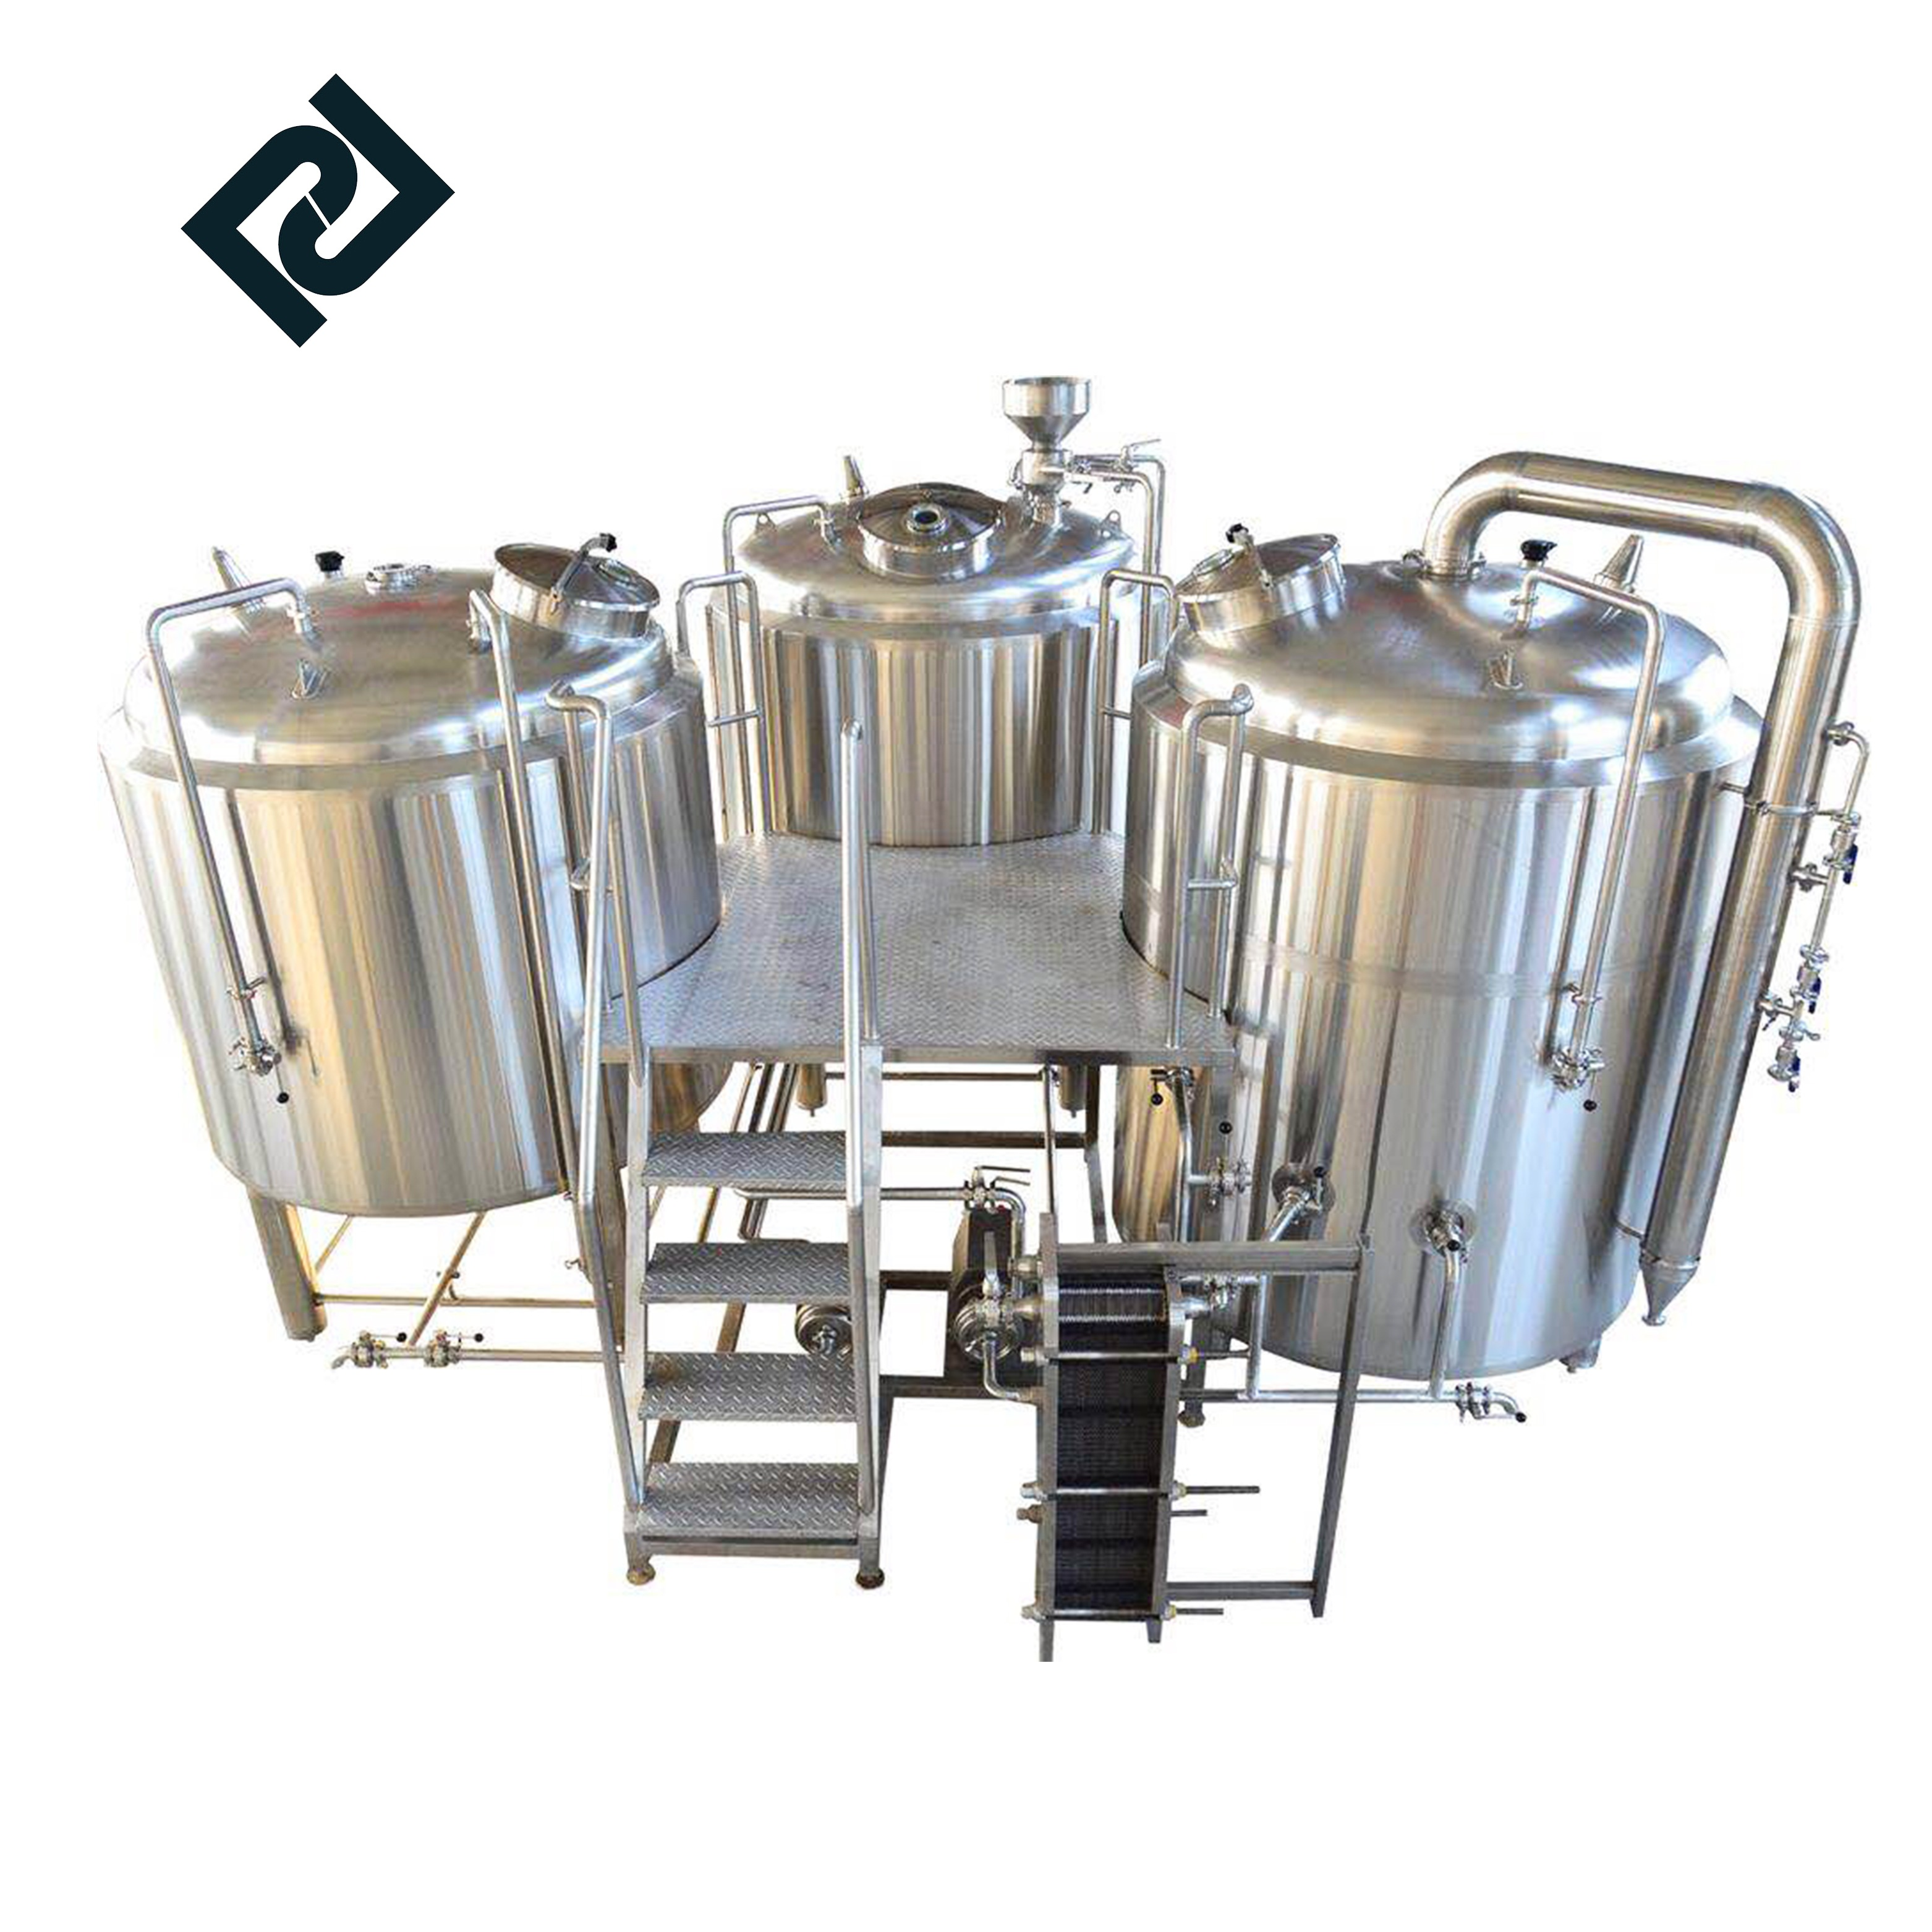 Hot Selling for Red Copper Commercial Beer Brewing Equipment - 1000L fermentation tank beer making system  beer brewing equipment – Pijiang